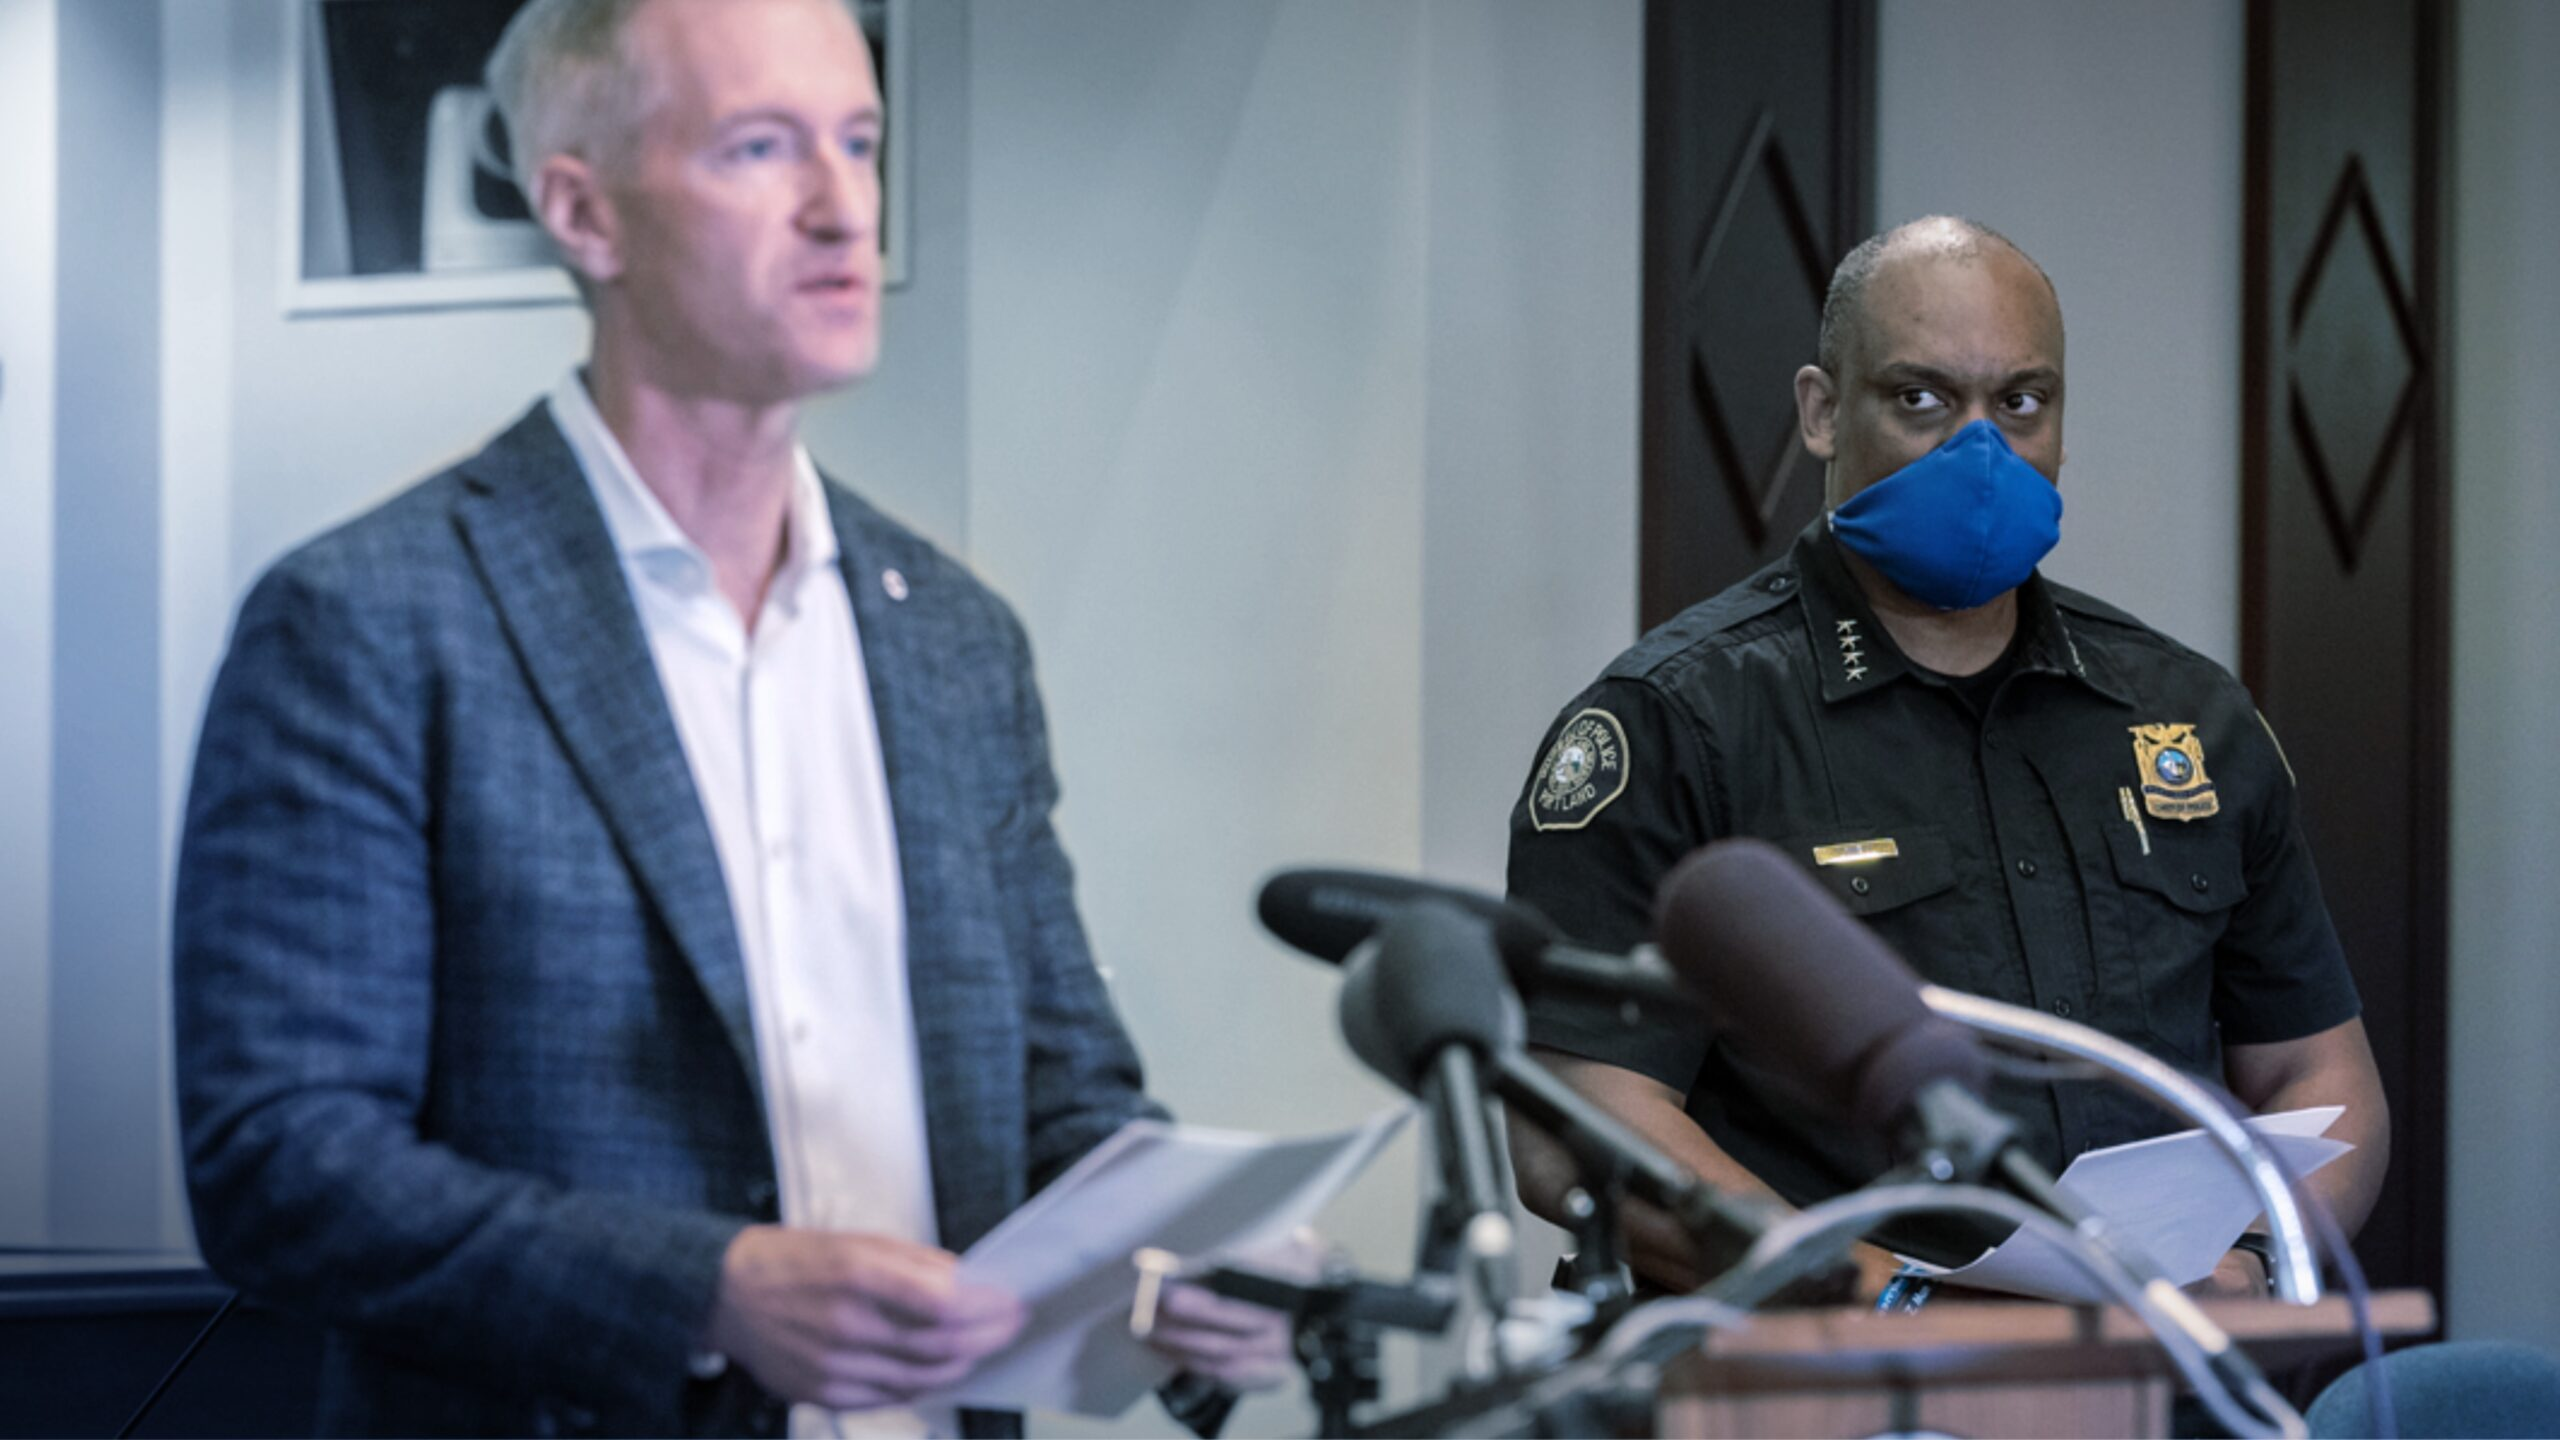 To Police Dismay, Portland Mayor Bans Police Use of Tear Gas After +100 Days of Rioting | Harbingers Daily